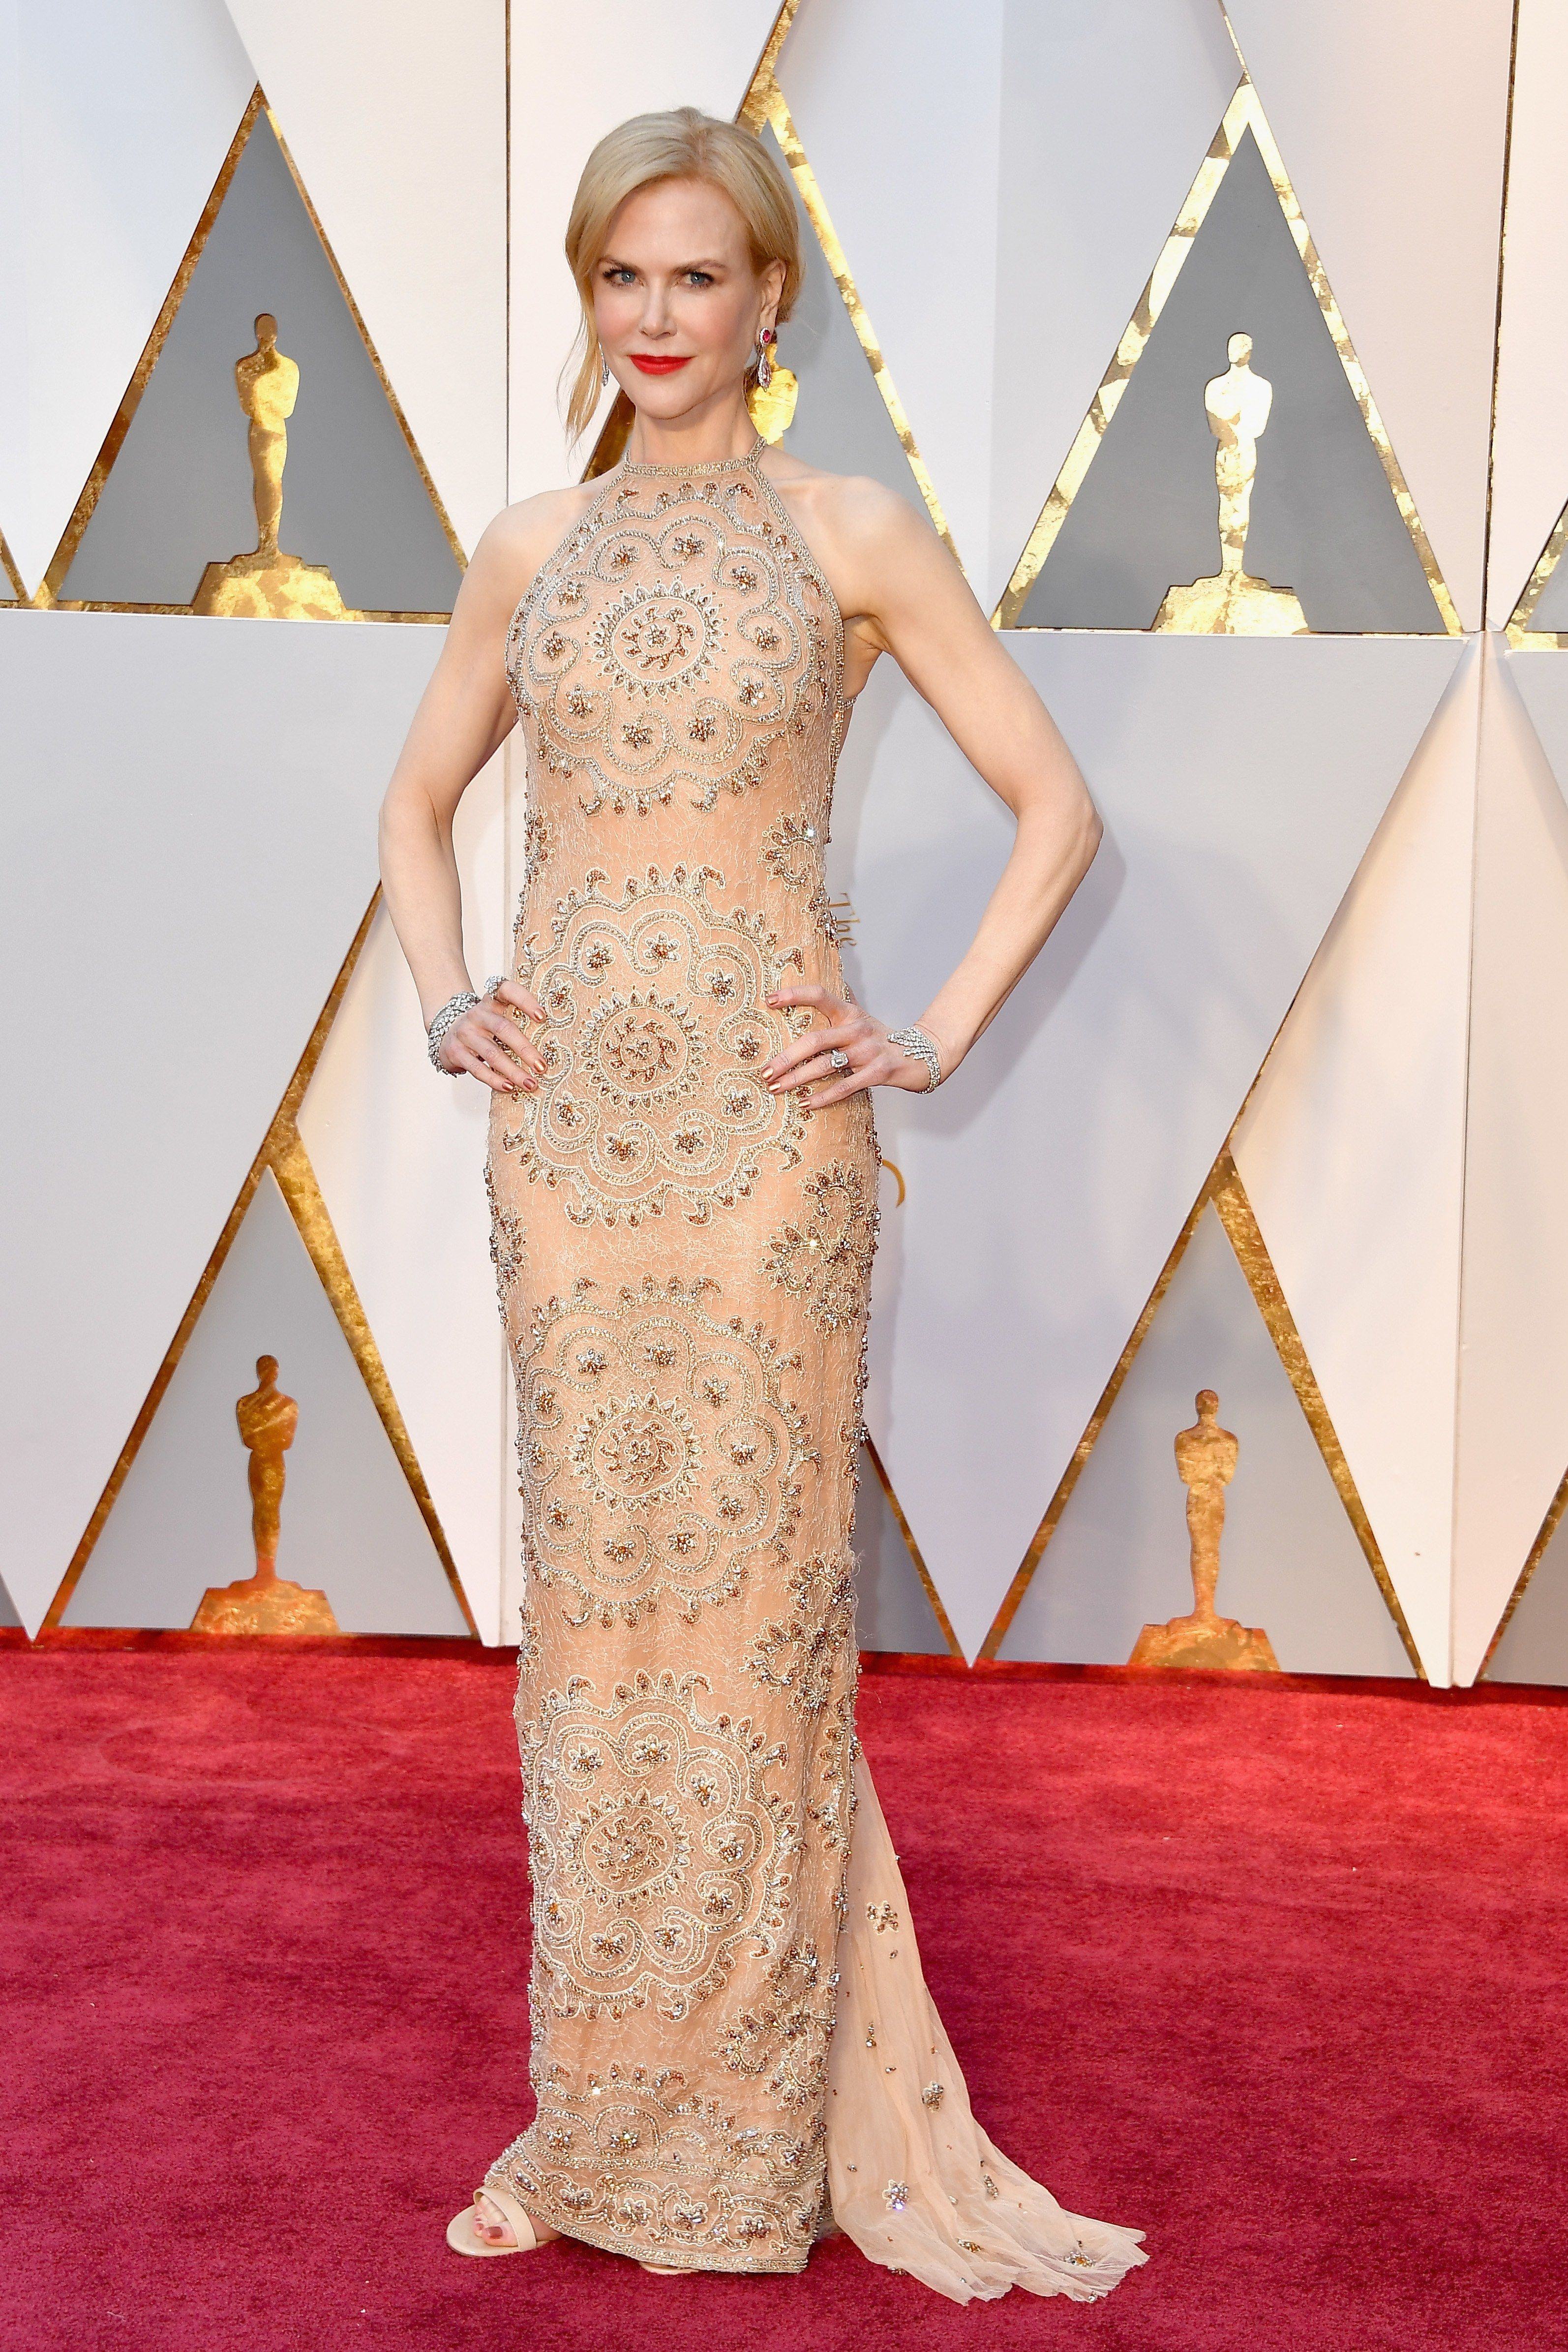 Oscars 2017 Fashion Live From The Red Carpet Red Carpet Gowns Nice Dresses Red Carpet Oscars